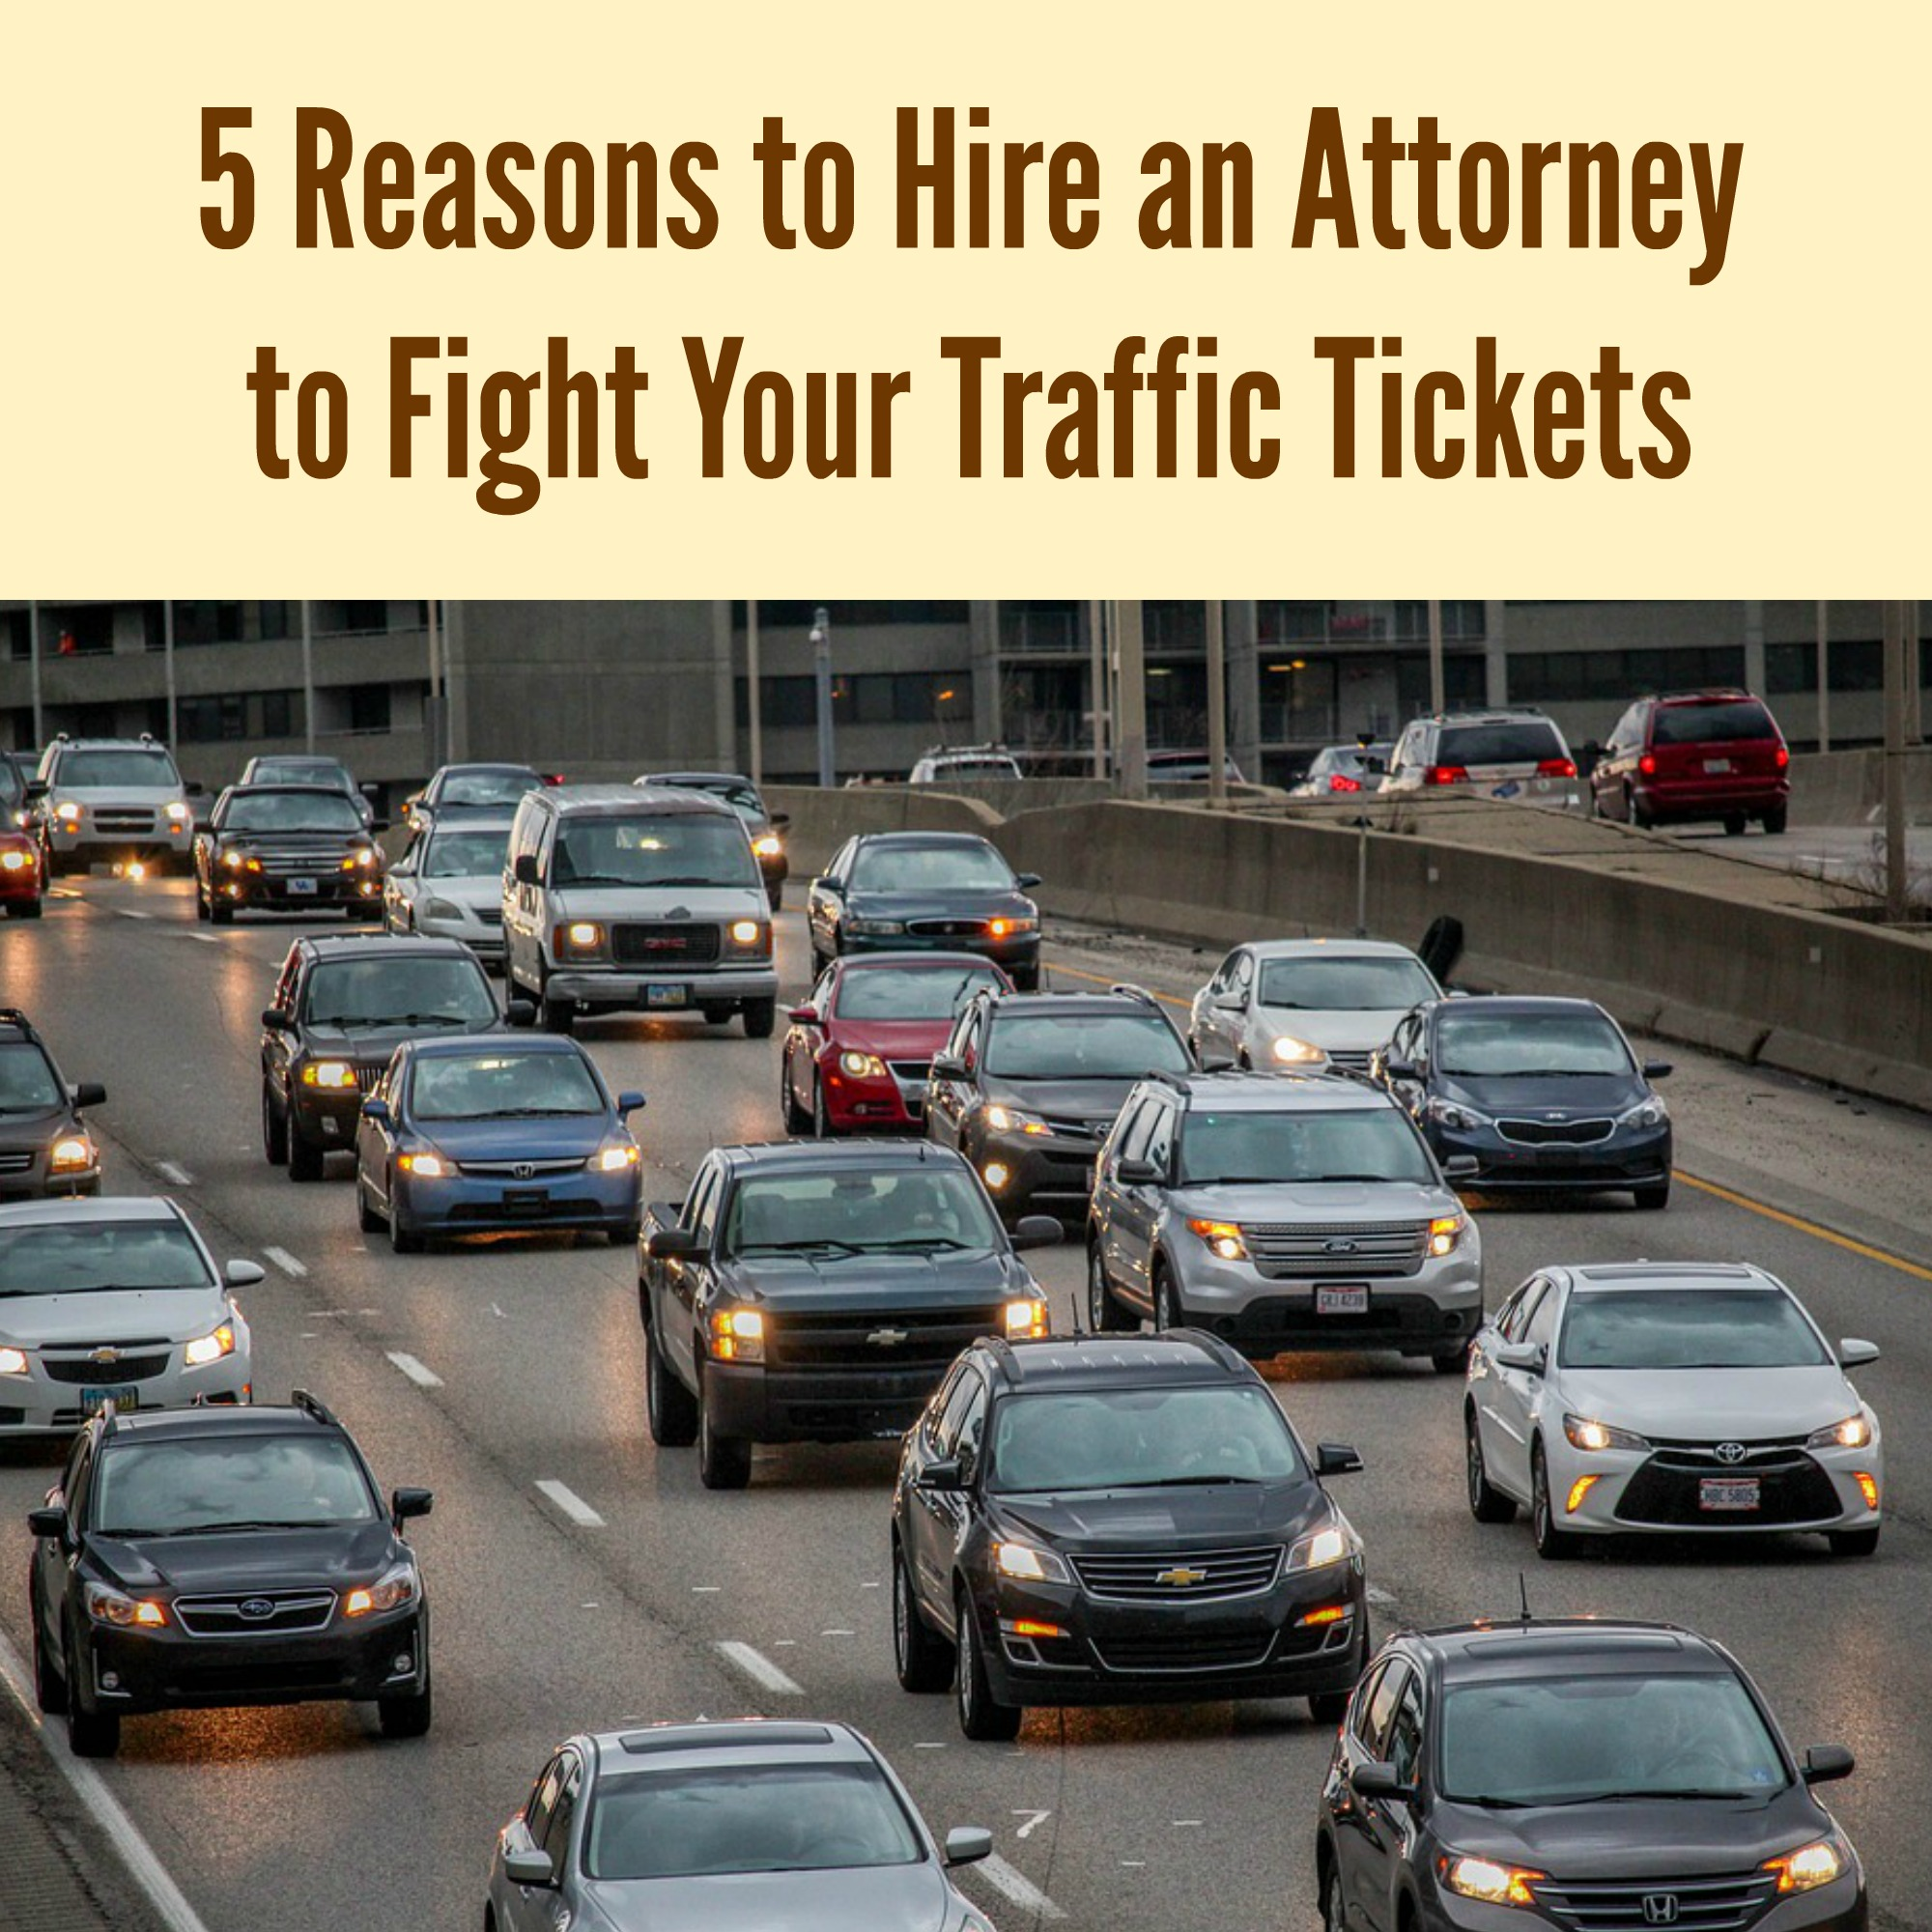 5 reasons to hire an attorney to fight your traffic tickets a nation of moms. Black Bedroom Furniture Sets. Home Design Ideas